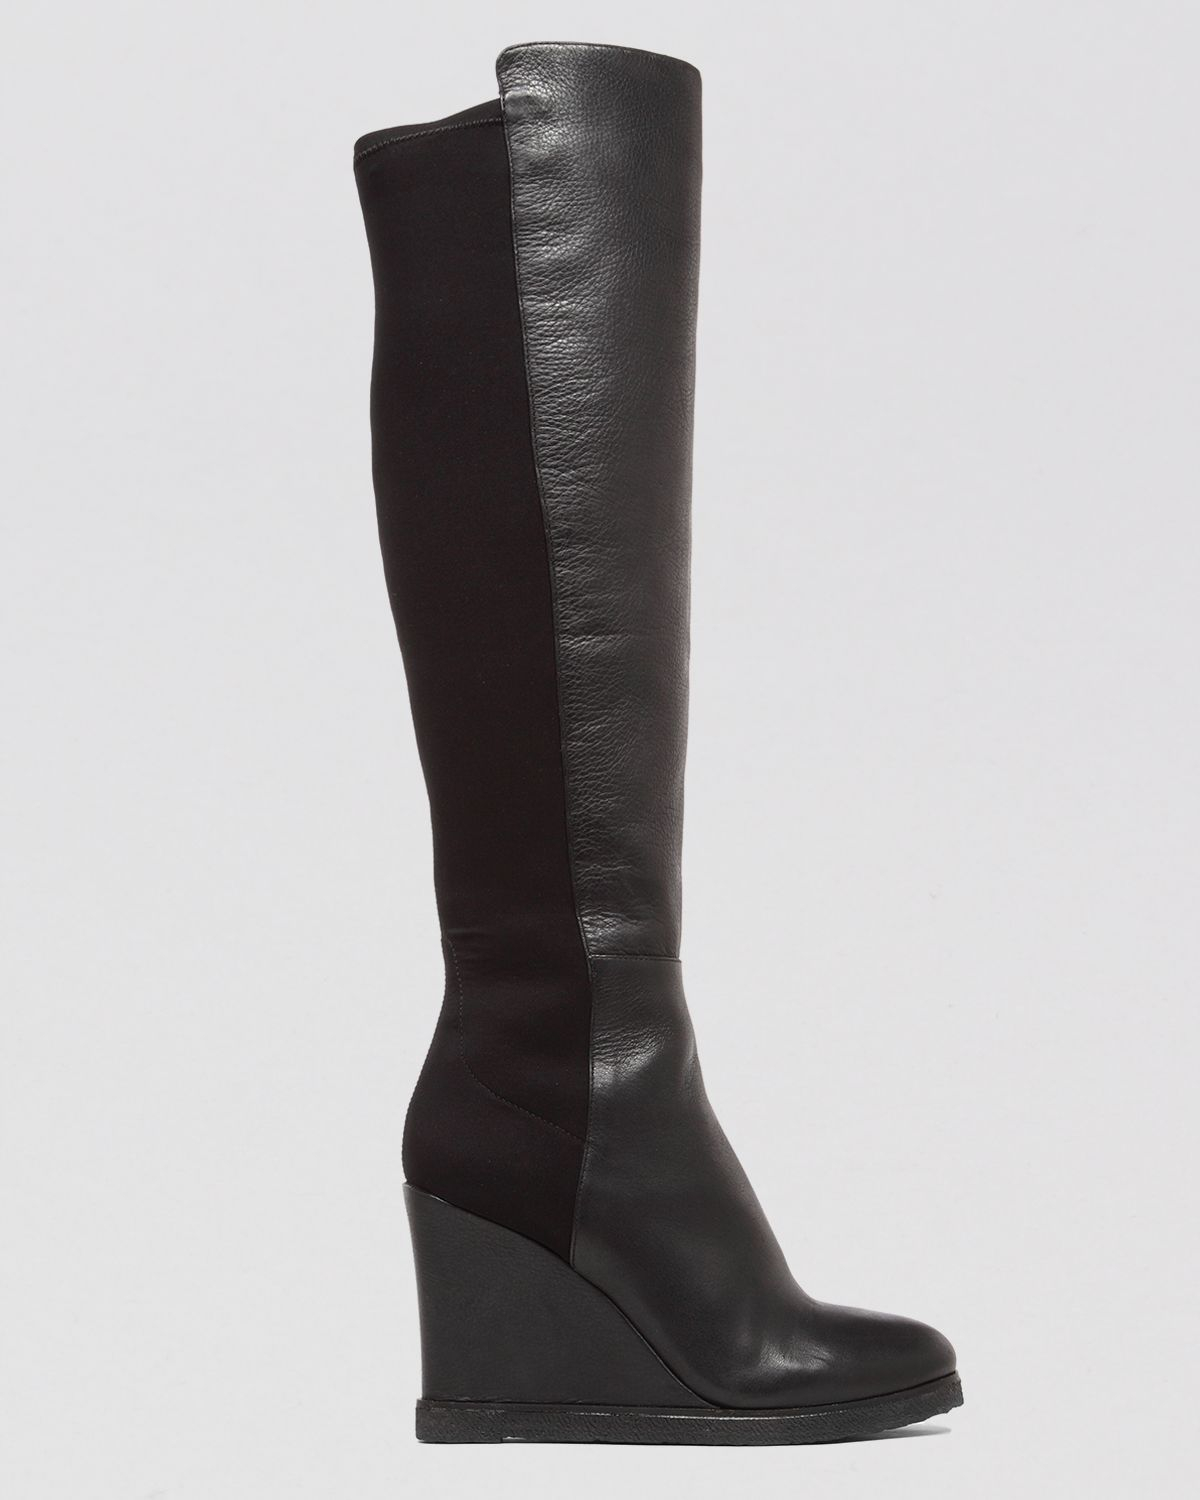 Vince camuto Tall Platform Wedge Boots - Kaelen in Black   Lyst